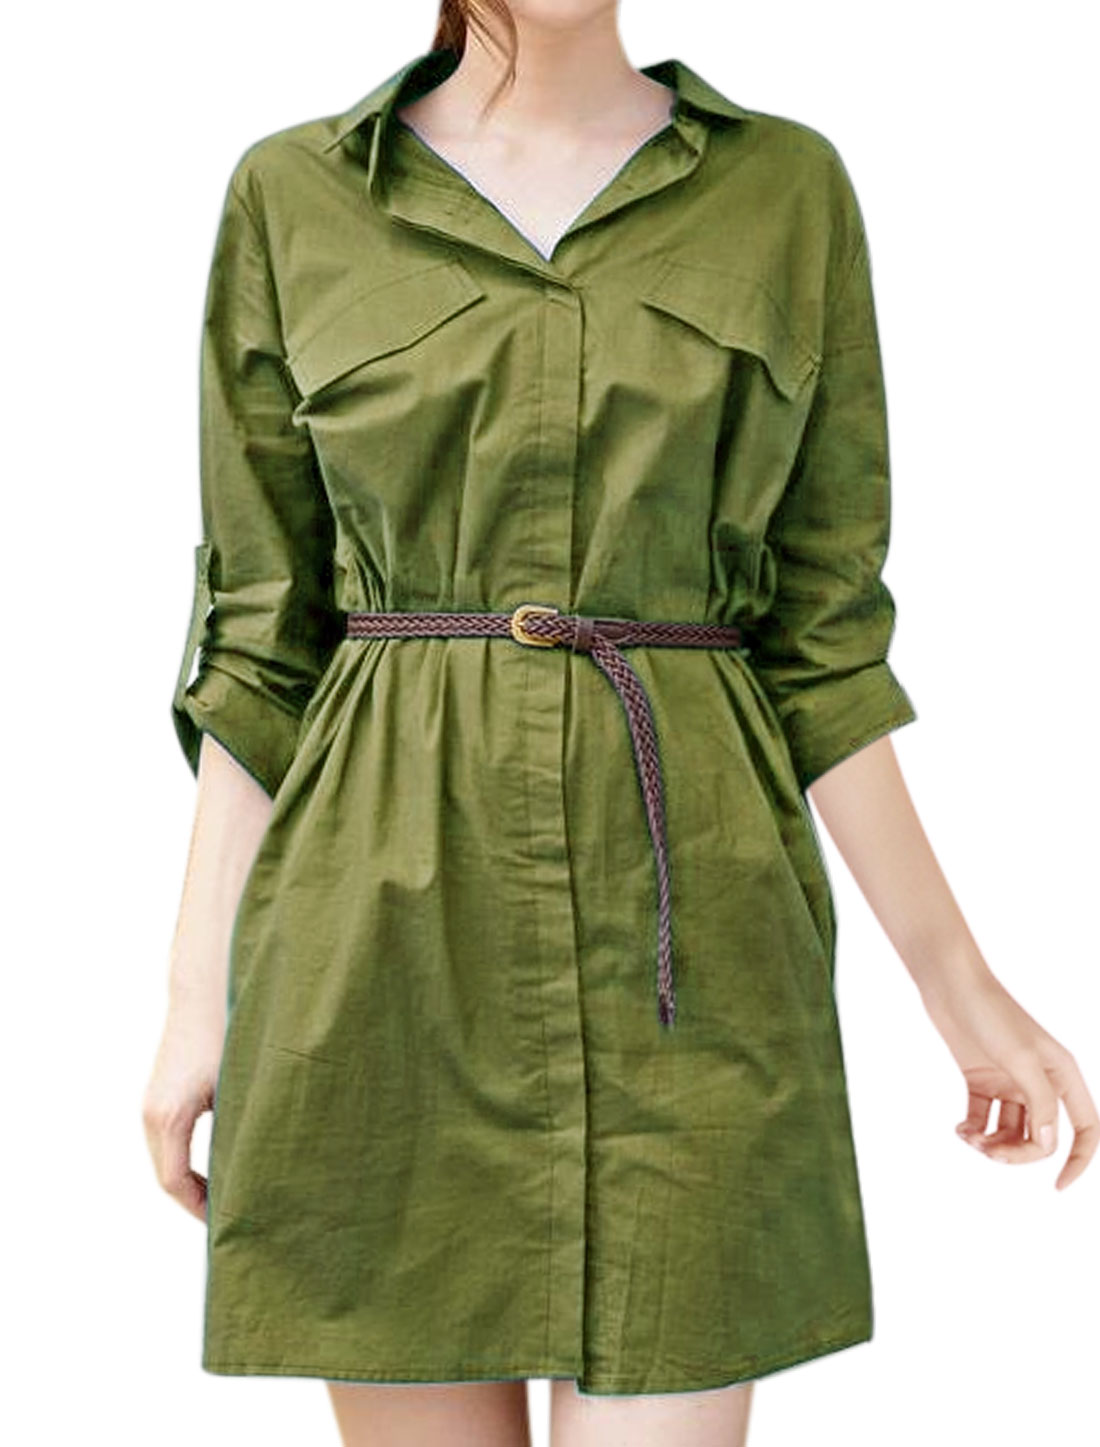 Woman Collared Roll Up Sleeves Shirt Dress w Belt Green XS